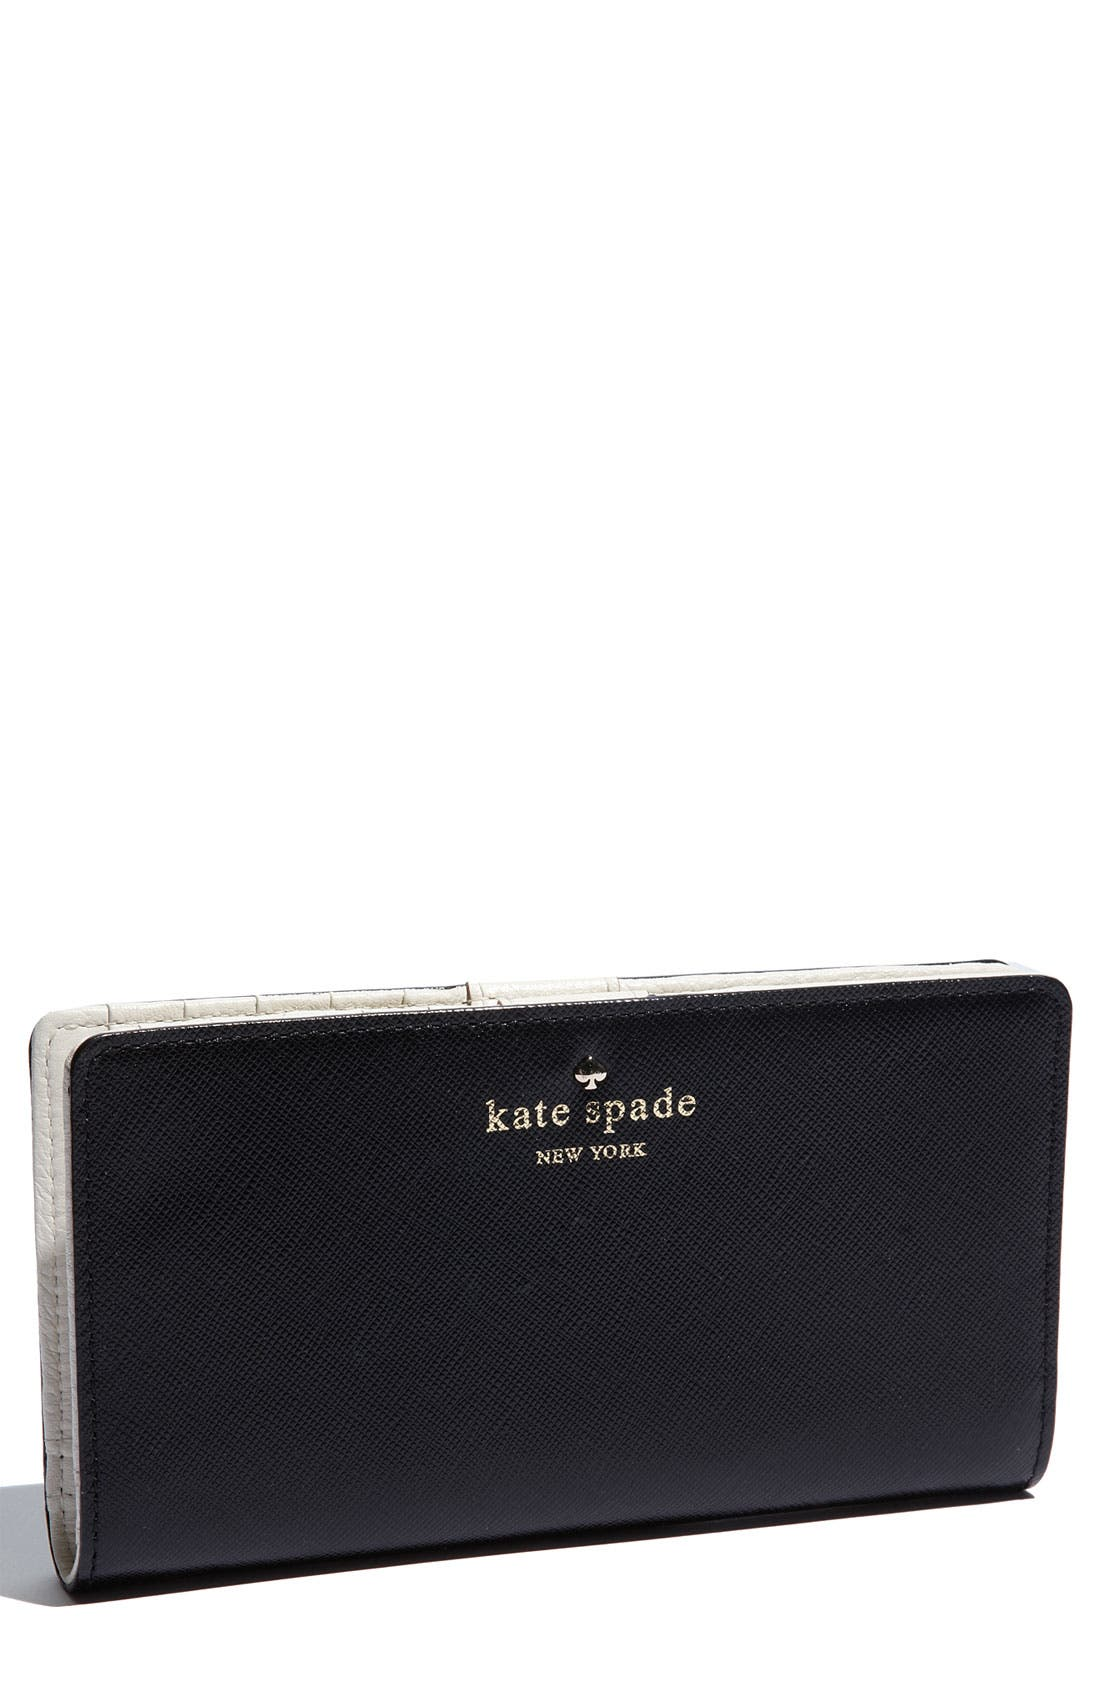 Alternate Image 1 Selected - kate spade new york 'mikas pond - stacy' wallet